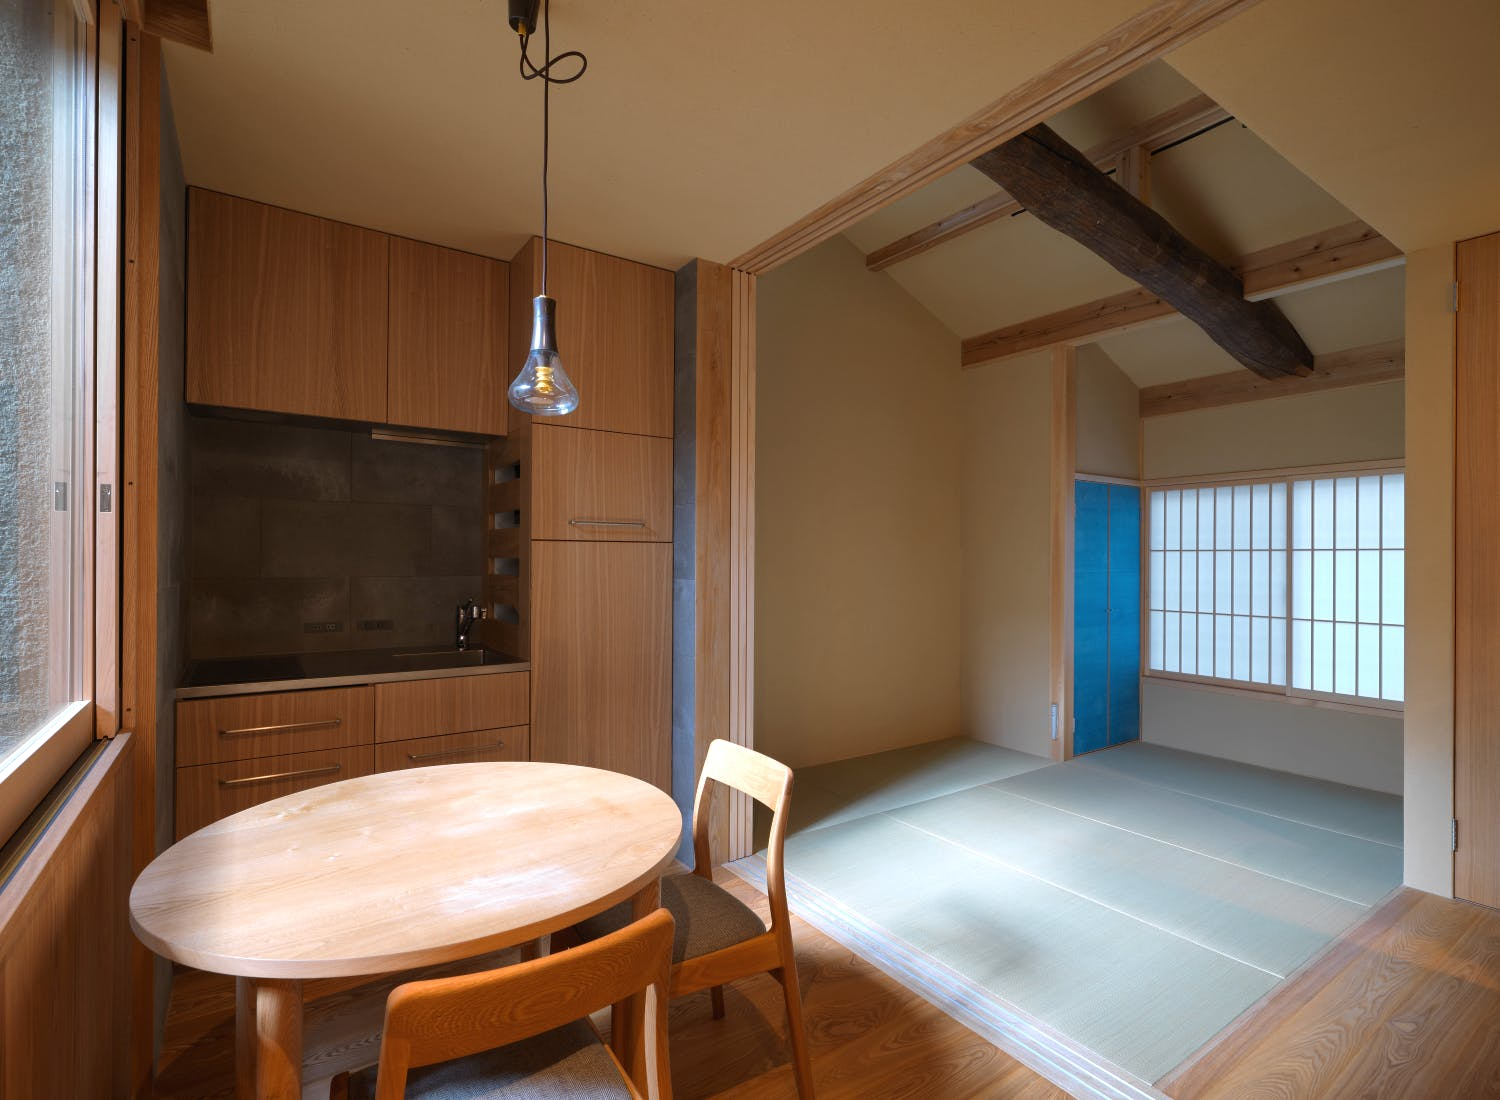 Kyoto Komatsu Residences - 1-room apartment featuring handcrafted fittings